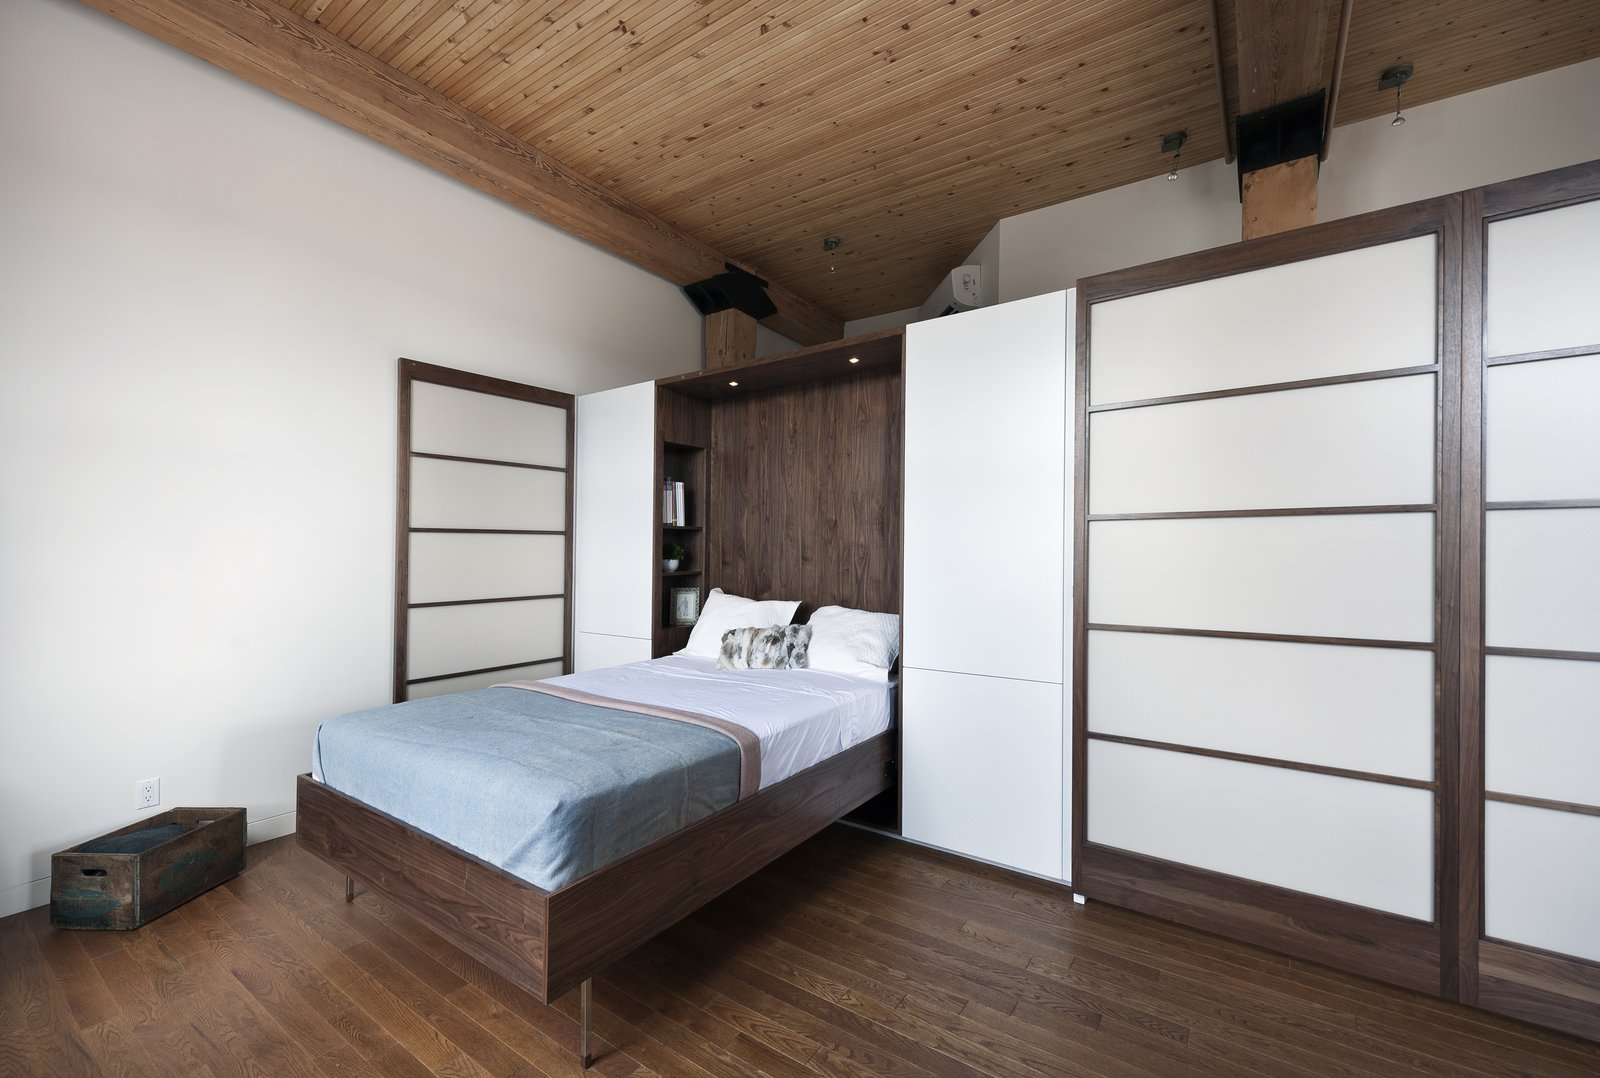 Gepetto built a Murphy bed that folds into a larger walnut storage unit. The wall, which also conceals a washer and dryer, does double duty as a partition between the bedroom and the loft's entrance. Tagged: Bedroom, Bed, and Dark Hardwood Floor.  Brick House by Caroline Wallis